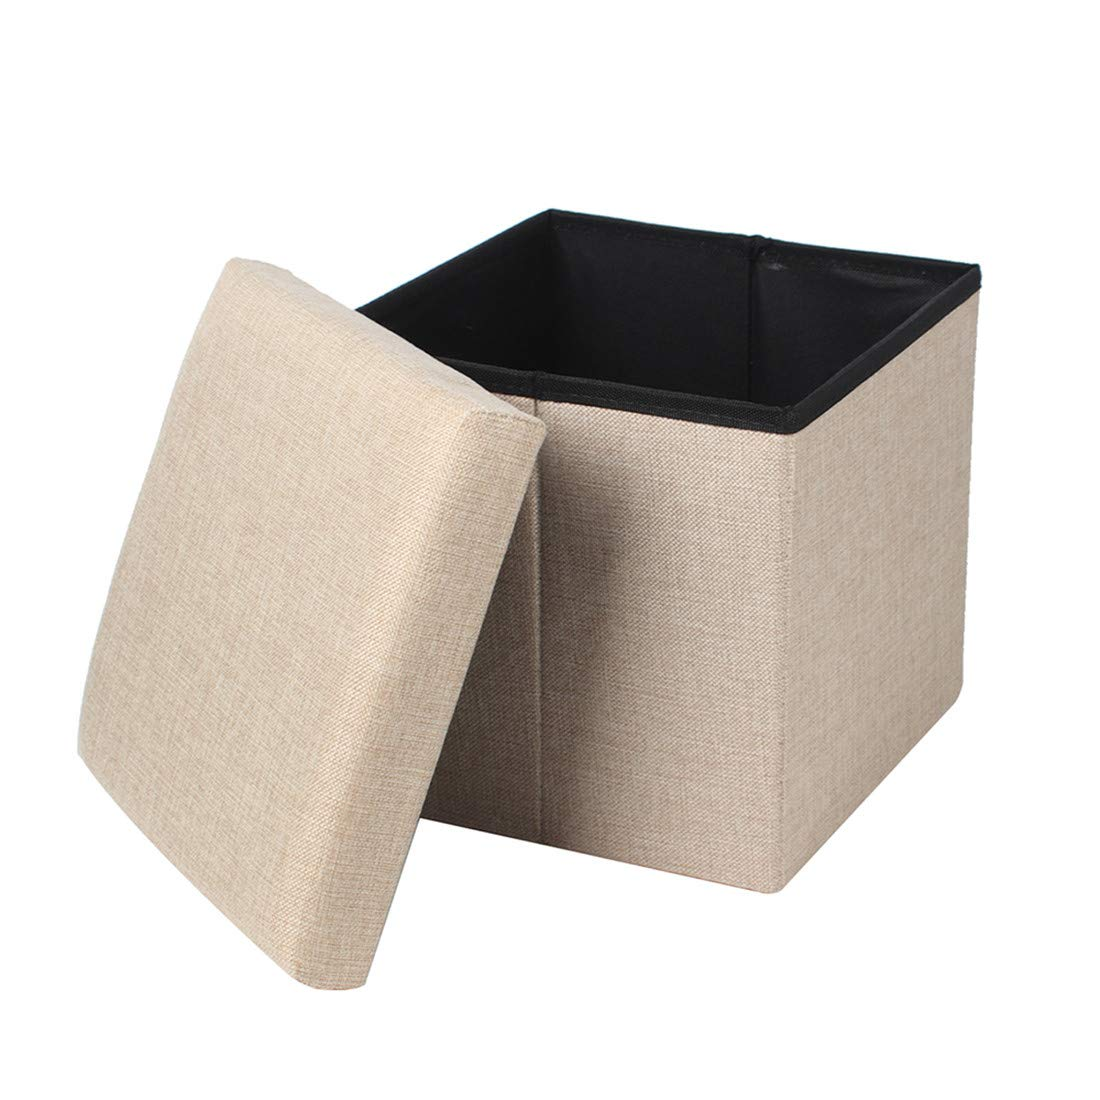 Queiting Folding Storage Ottoman Storage Box Seat Cube Single Seat Bench with Removable Lid Grey